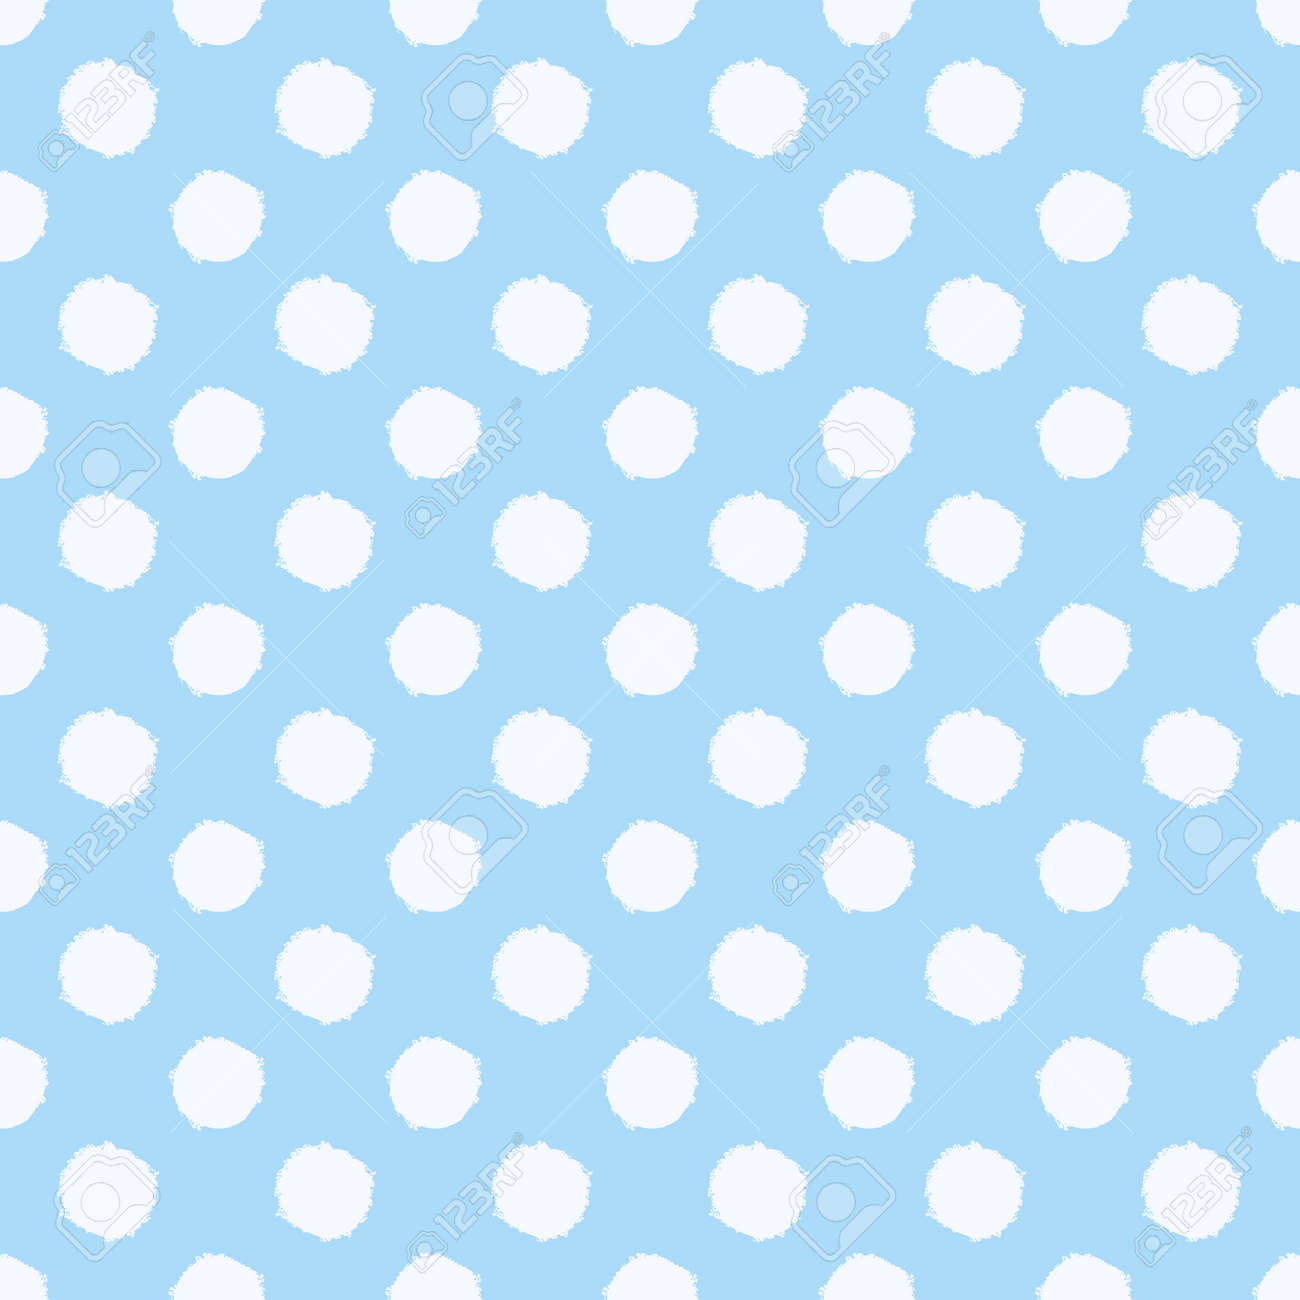 Polka dot seamless pattern. White and blue spotted background. Vector hand-drawn texture. - 171394234